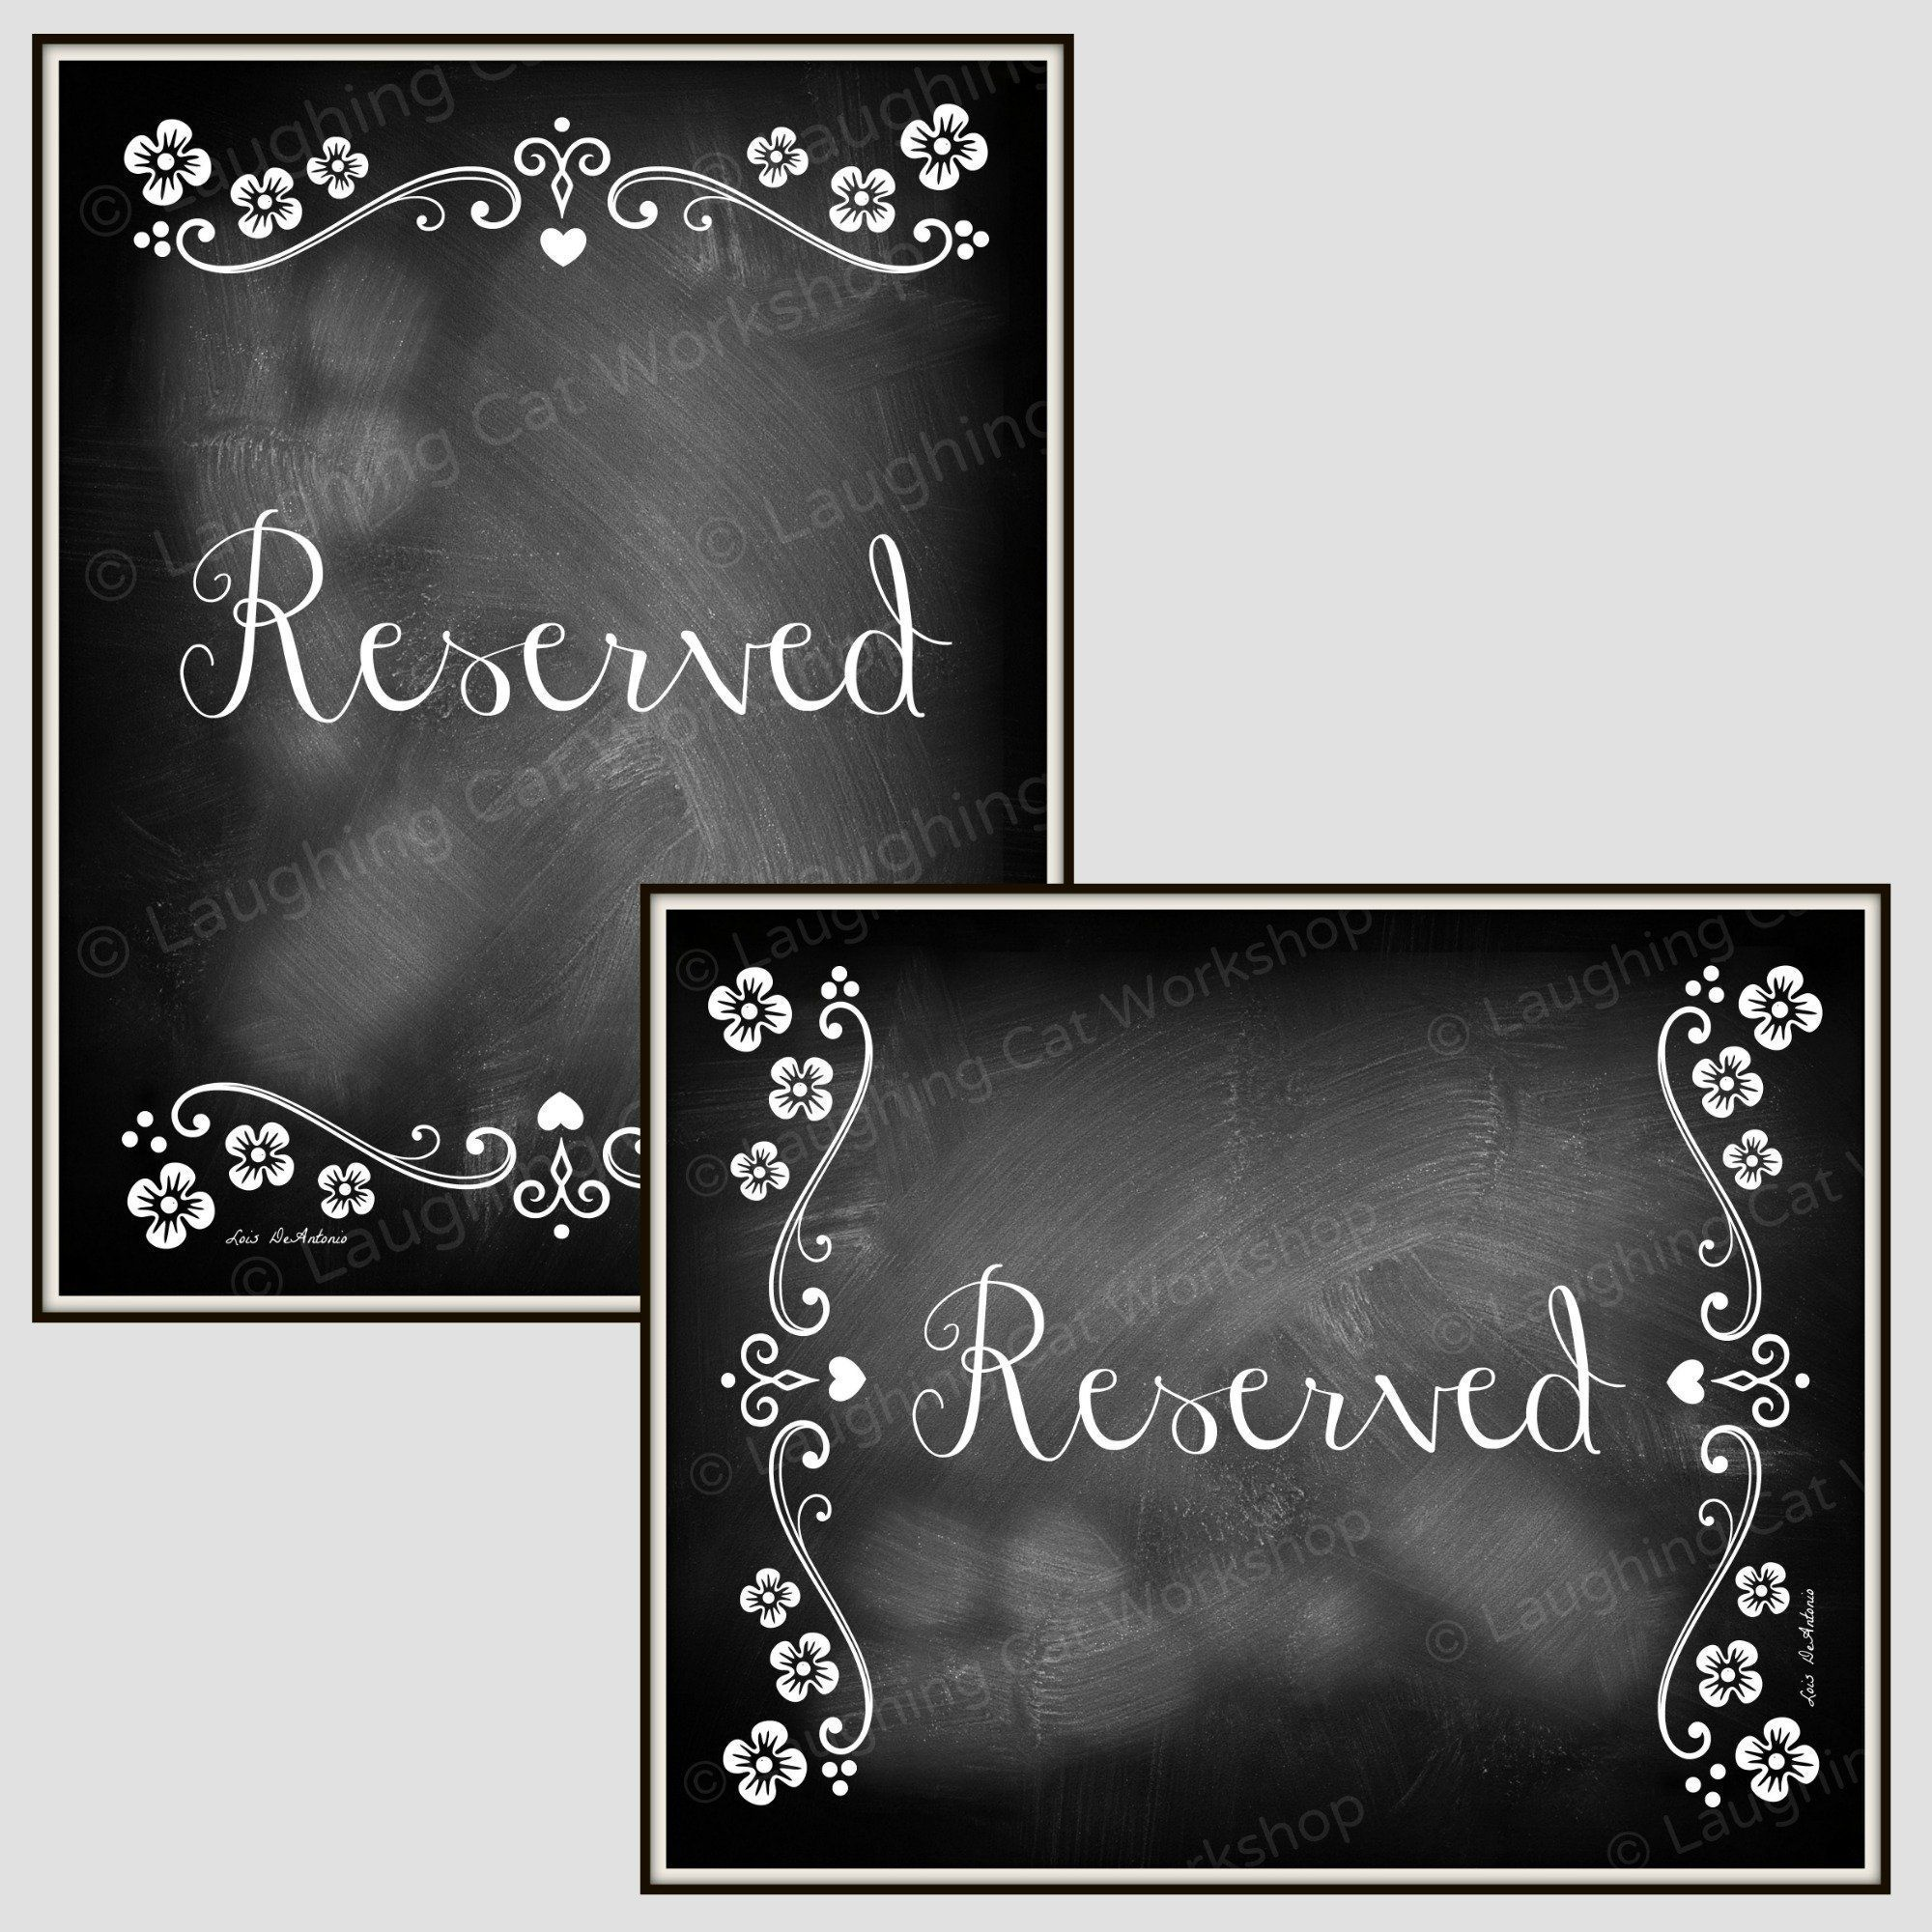 Slate blue wedding decor  Wedding Reserved decor Chalkboard Style Wedding Table Decor Rustic